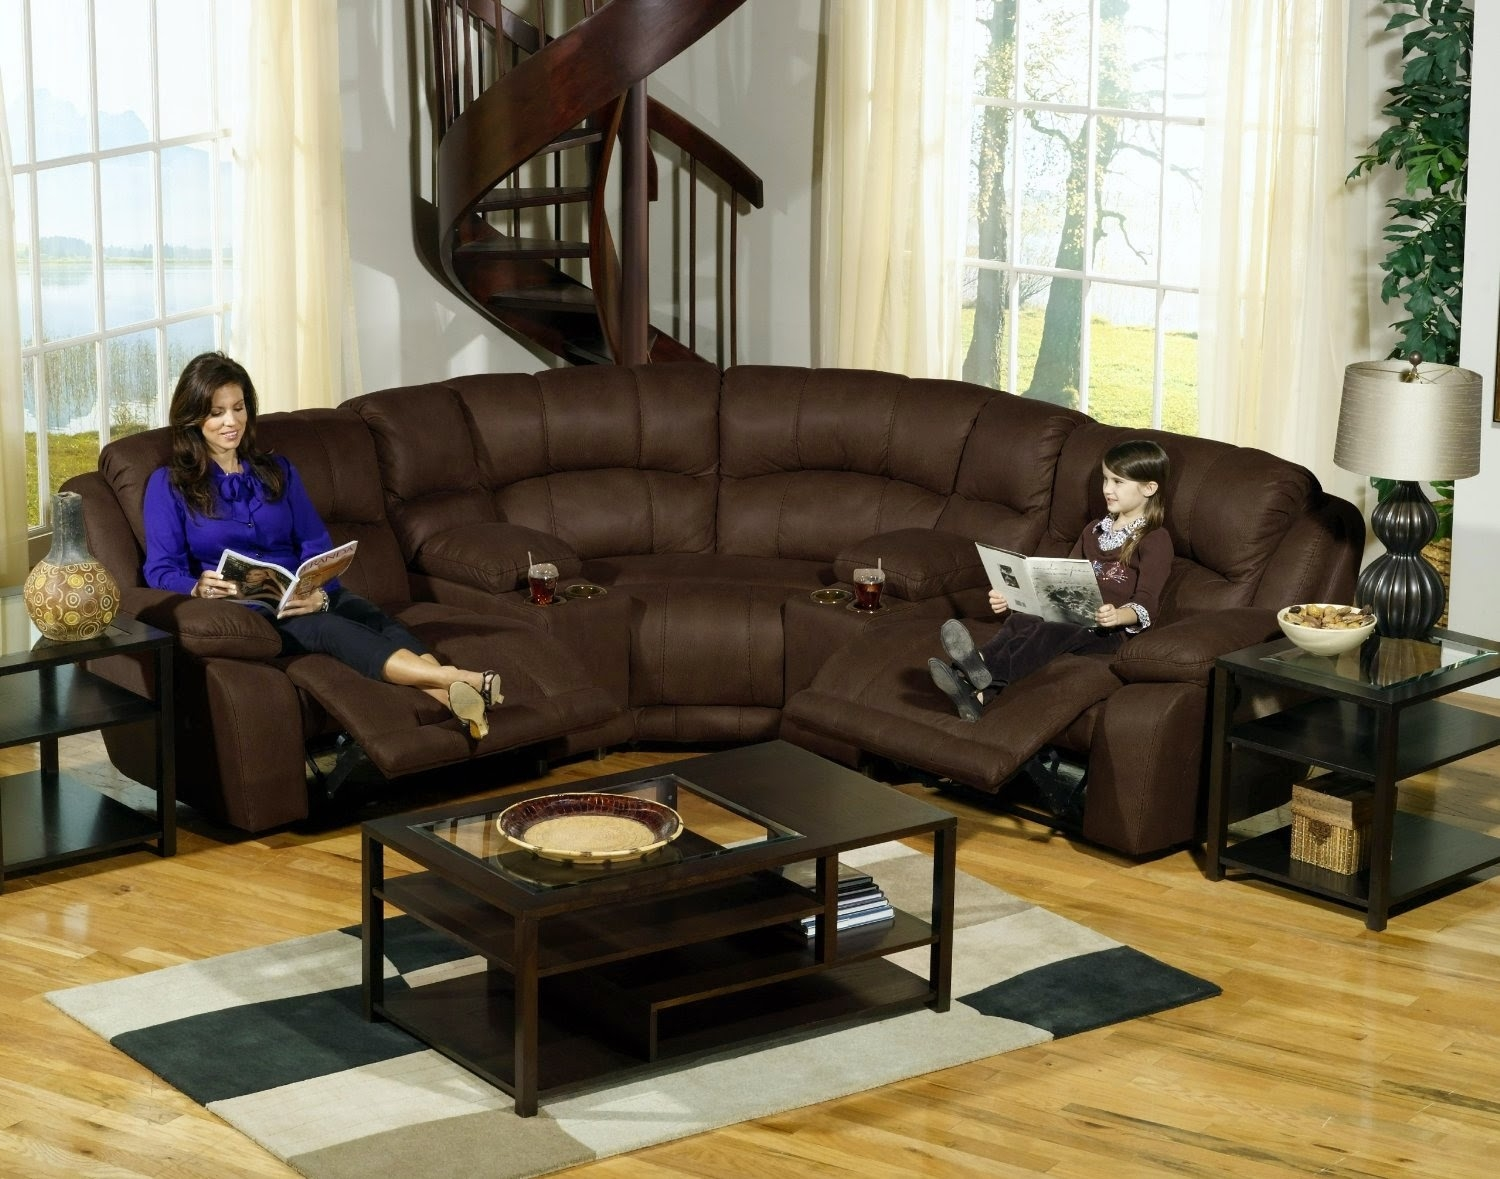 Stunning Leather Sectional Sofa With Power Recliner 17 On Berkline Pertaining To Berkline Sectional Sofa (#12 of 12)